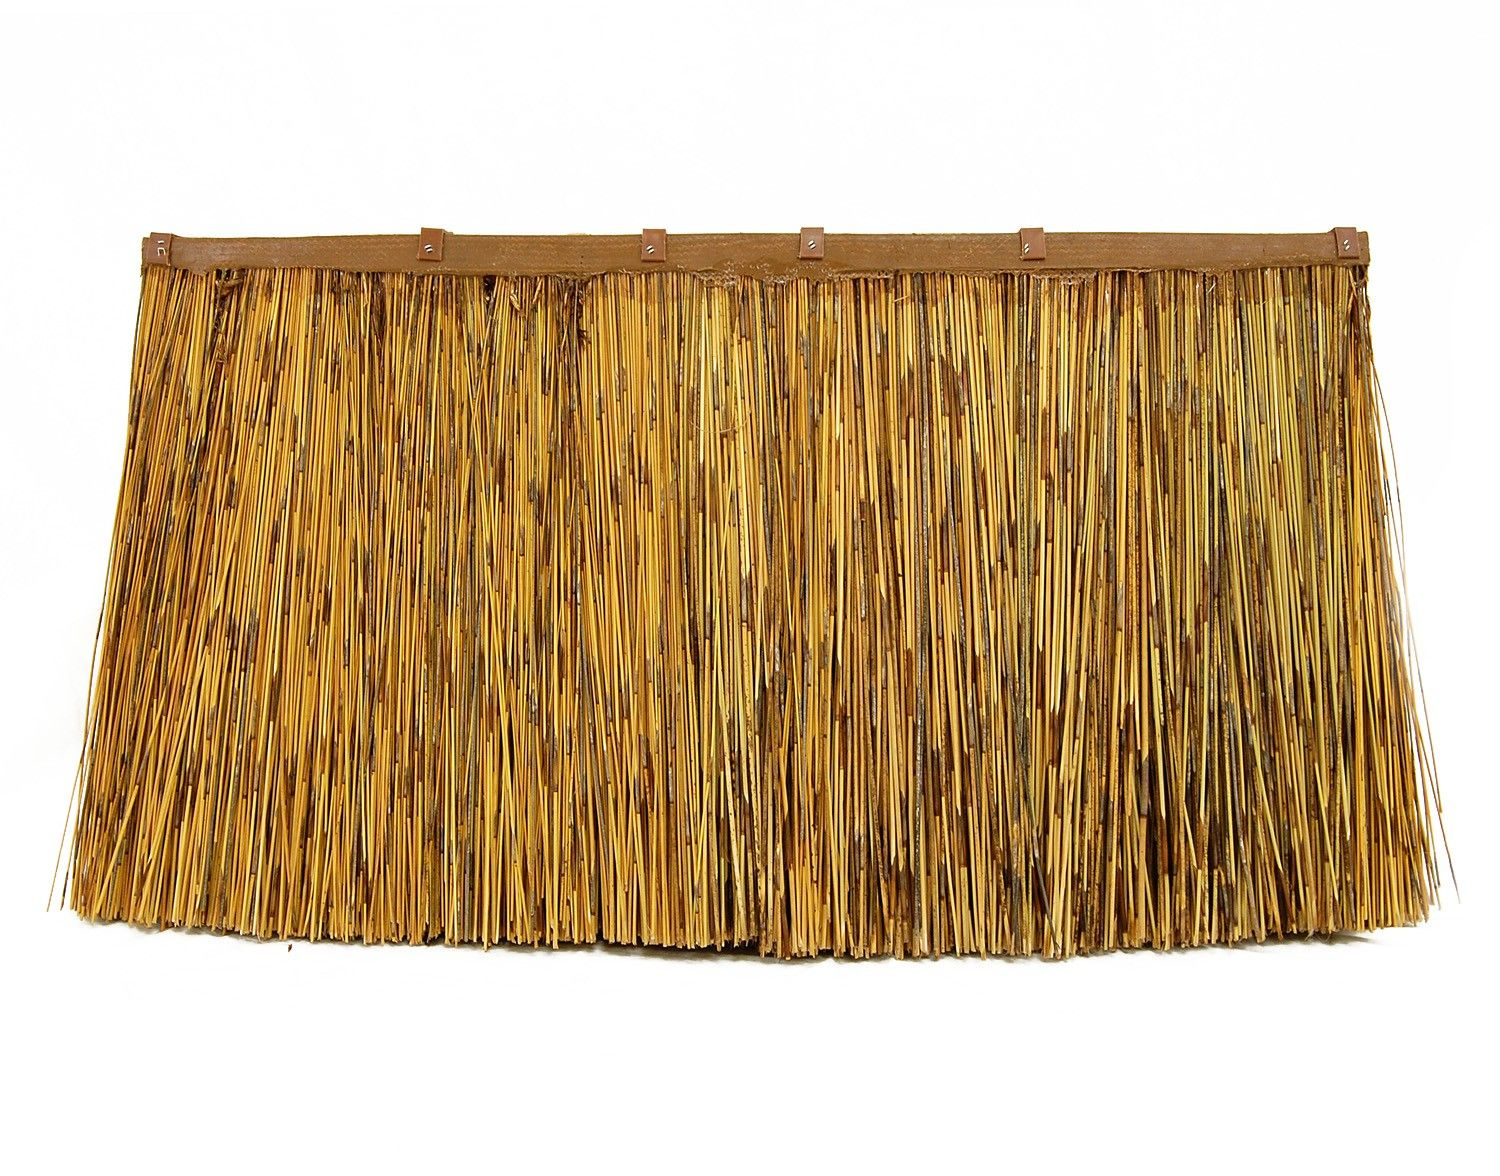 Africa Thatch Cape Reed Panel Heavy Duty Initially Designed For Shade Covering Authentic African Thatch Palapas Can Now Be Found In Many Backyard Settings